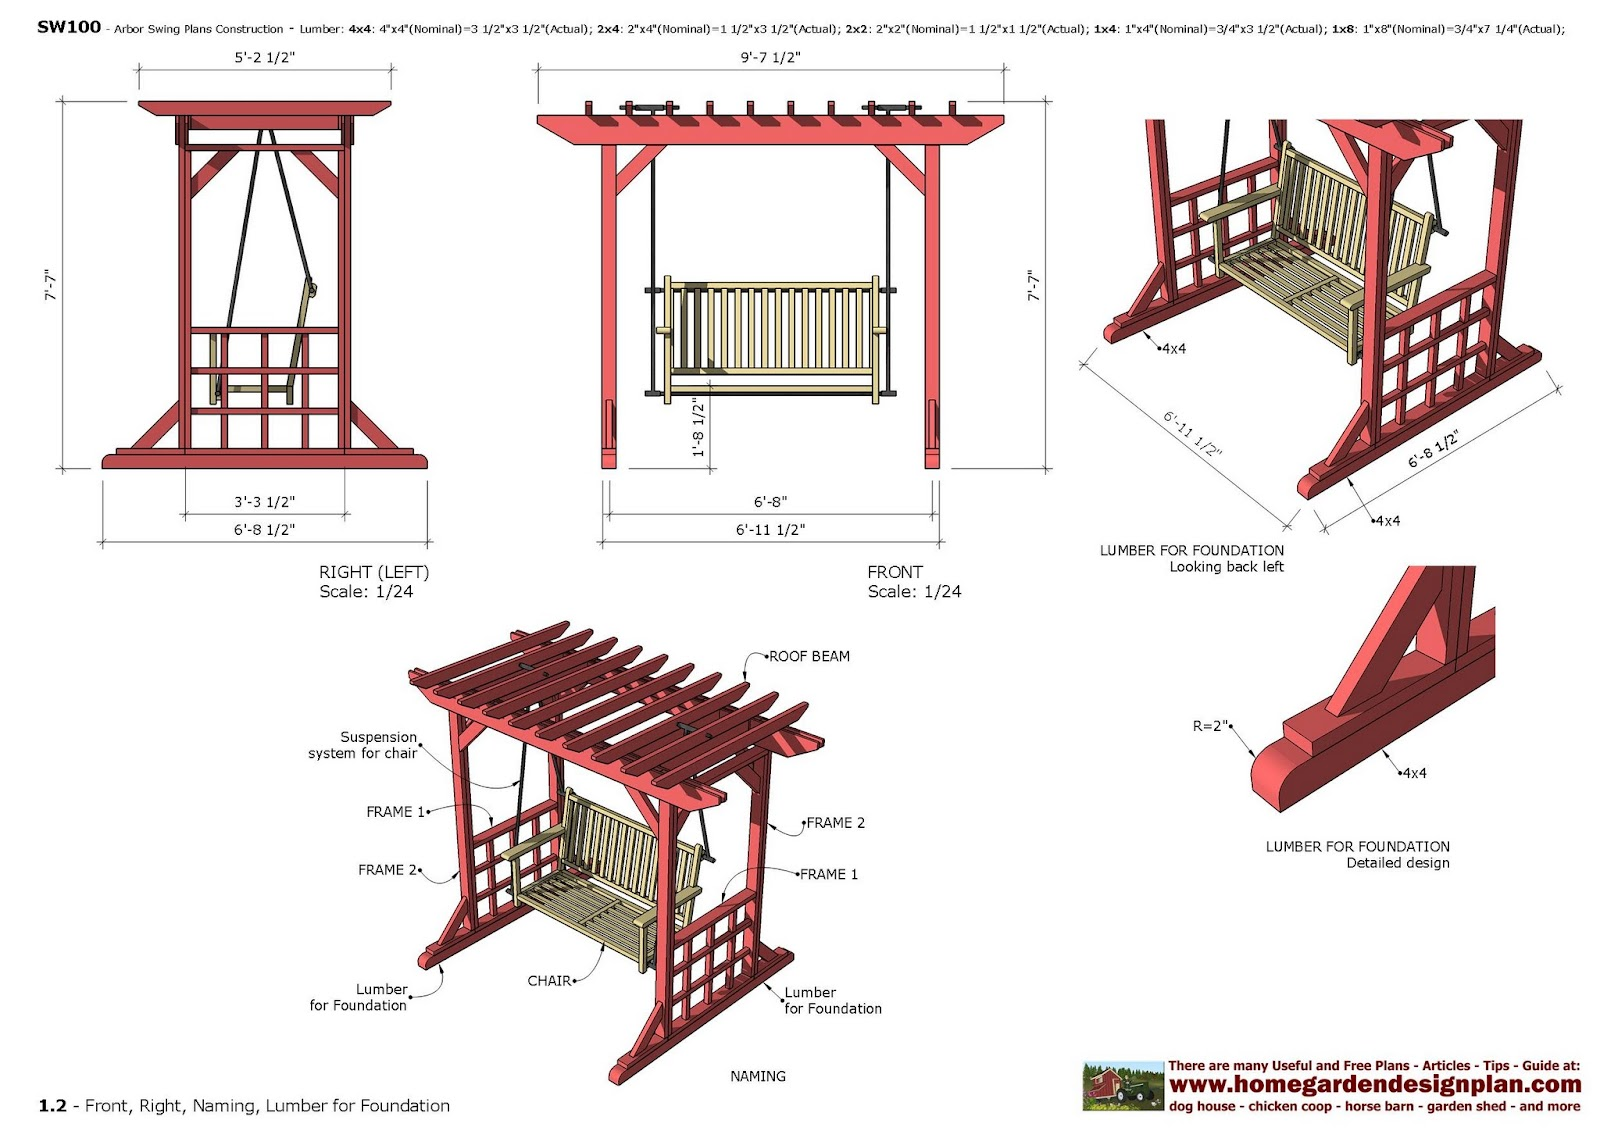 Home Garden Plans Furniture Plans Arbor Swing Plans - garden swing designs